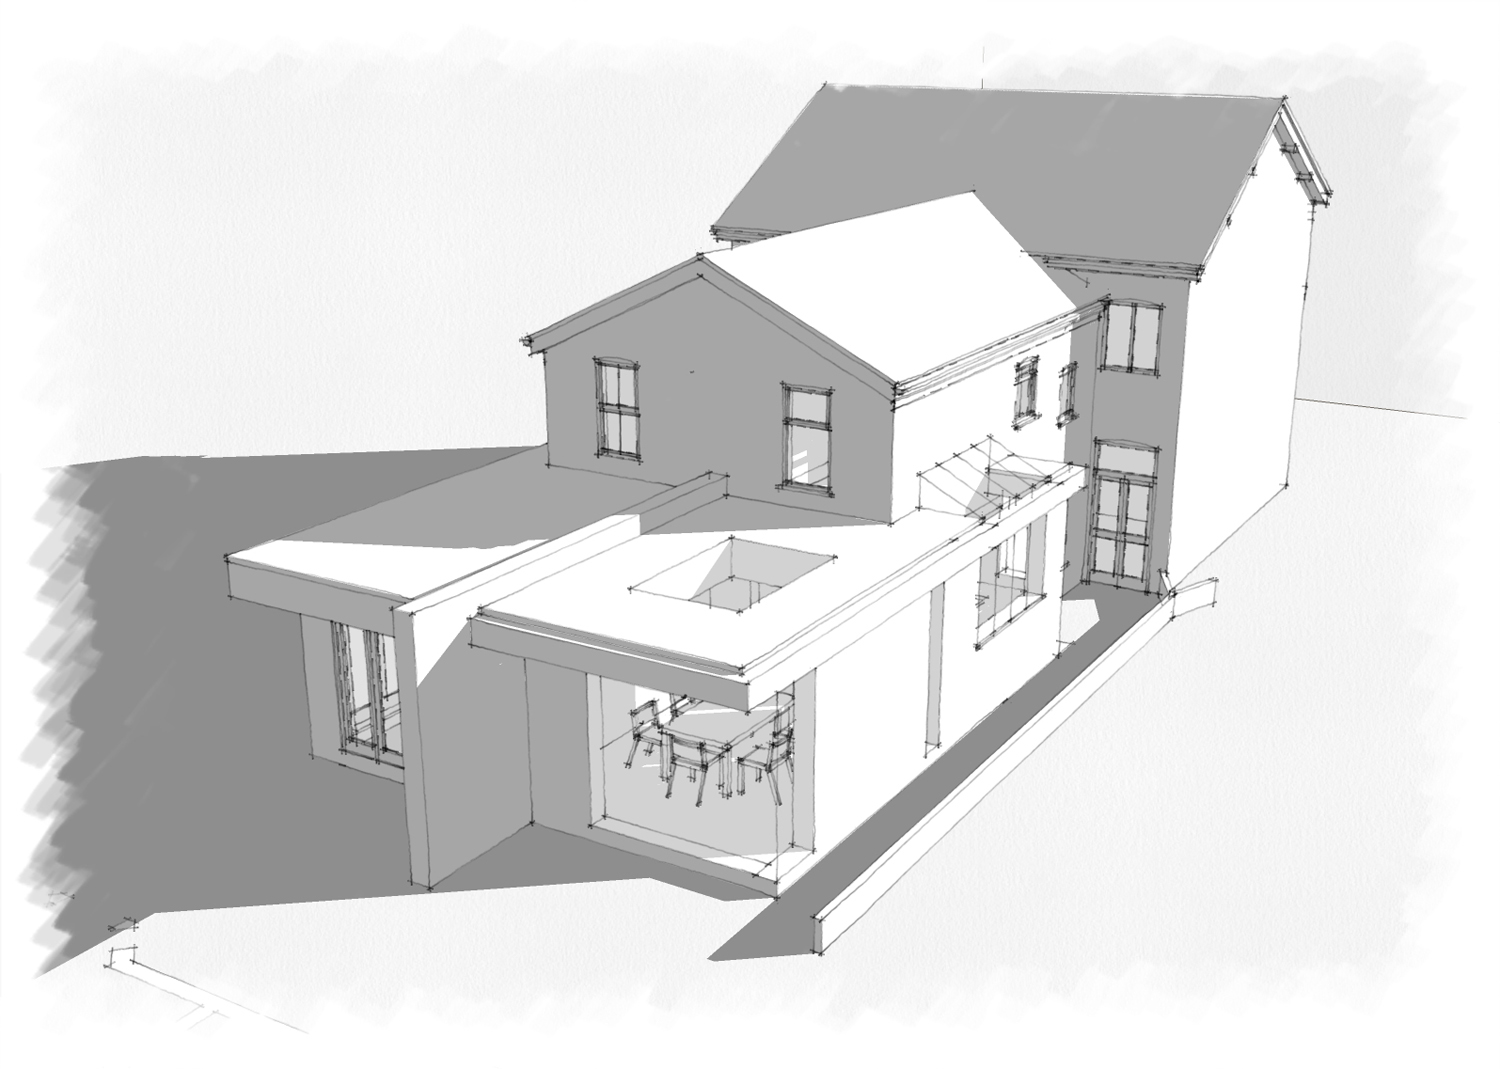 Kitchen extension with flat roof